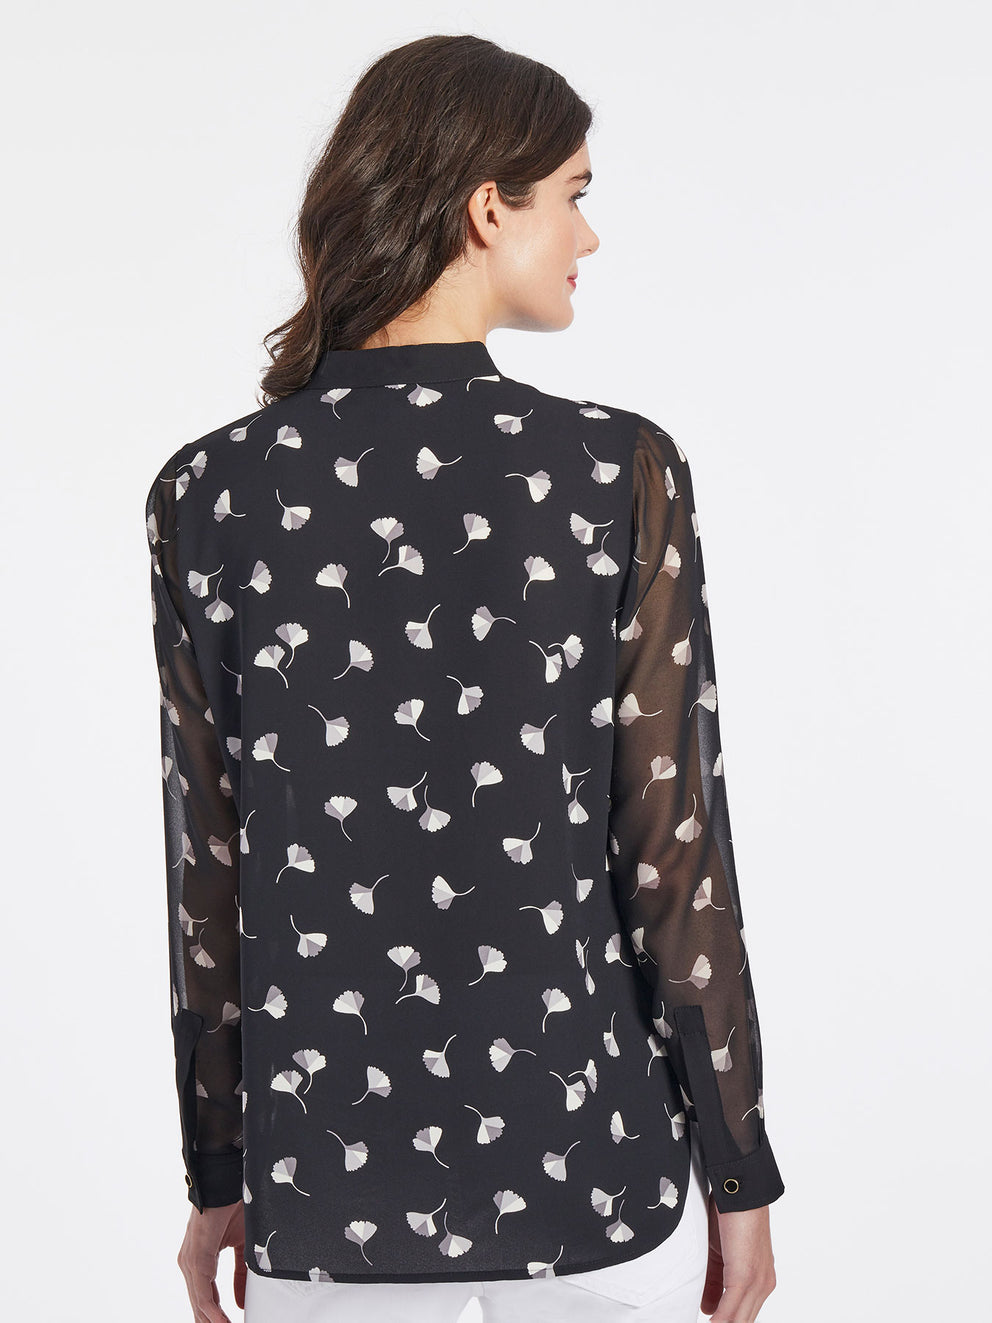 The Jones New York Printed Collarless Blouse in color Jones Black Combo - Image Position 3